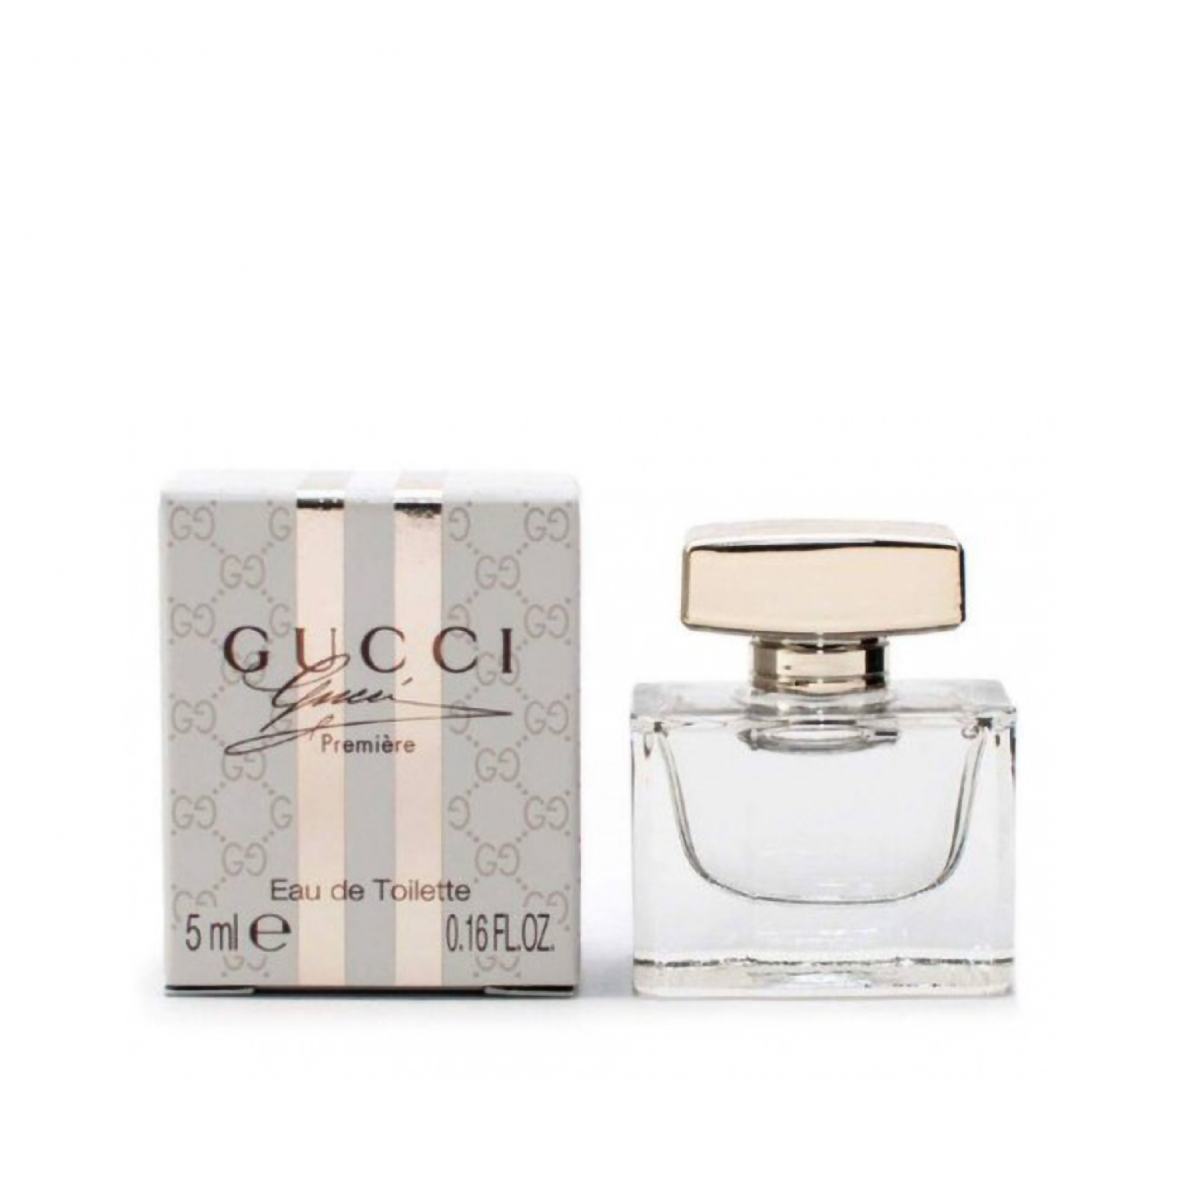 Gucci Premier EDT 5ml